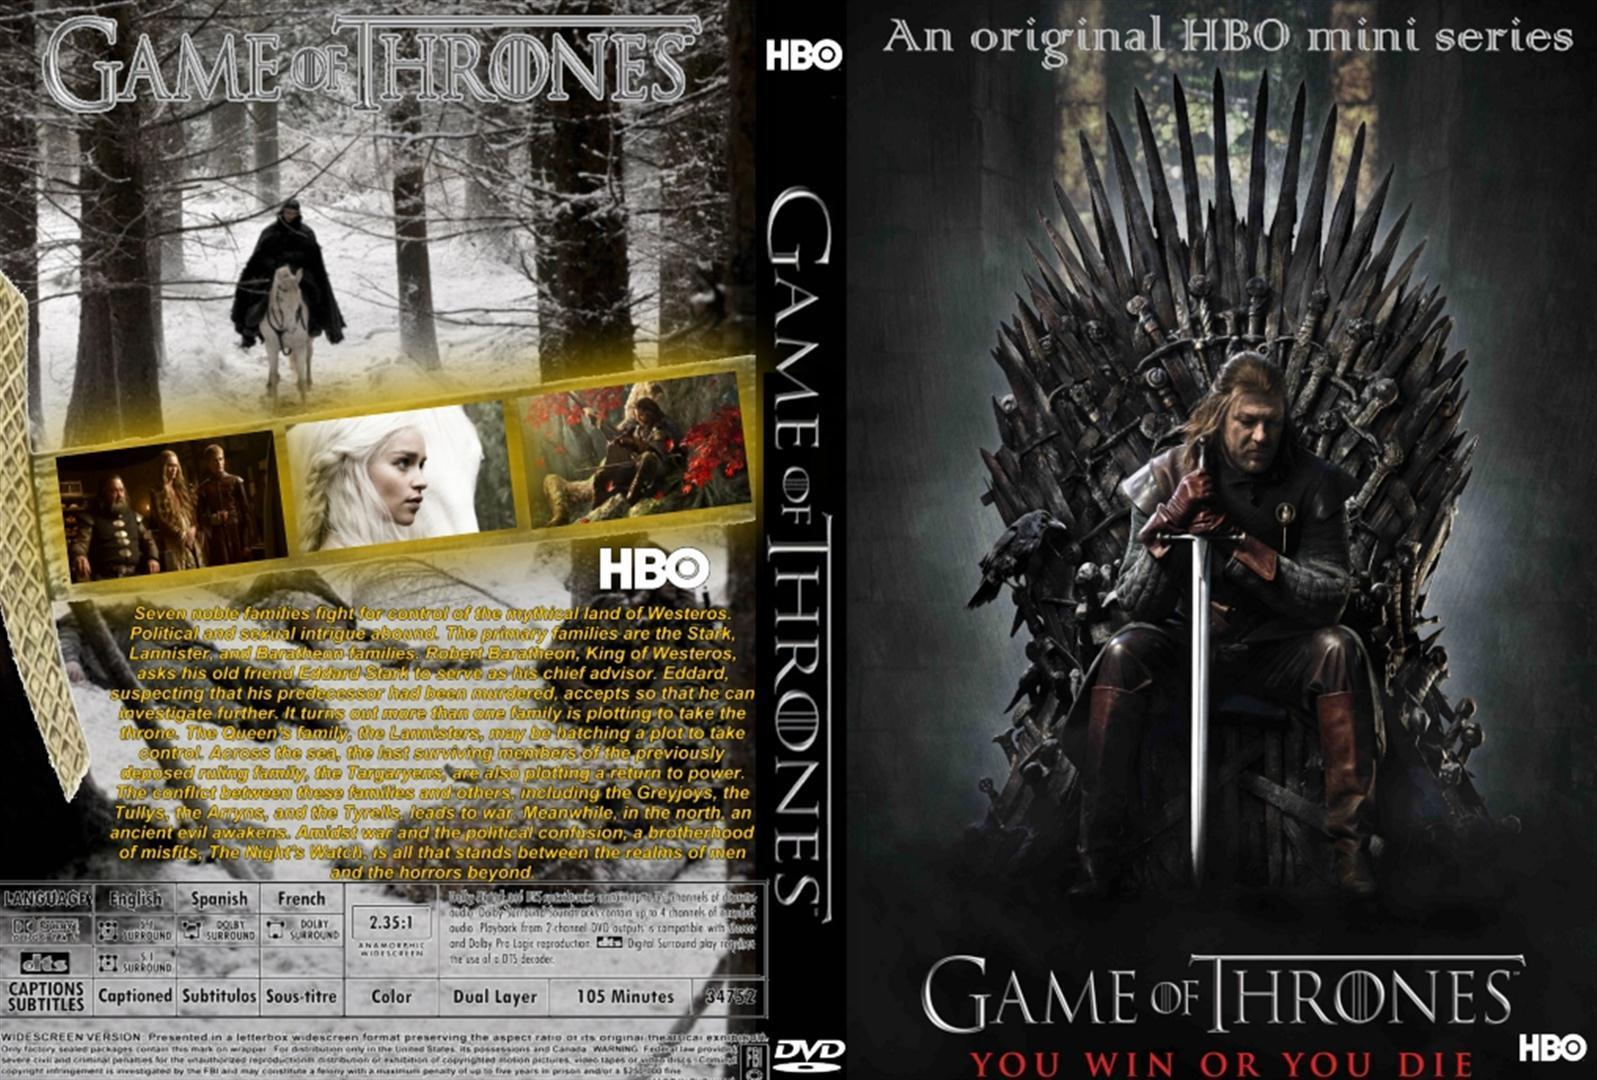 the gallery for game of thrones season 2 dvd cover. Black Bedroom Furniture Sets. Home Design Ideas